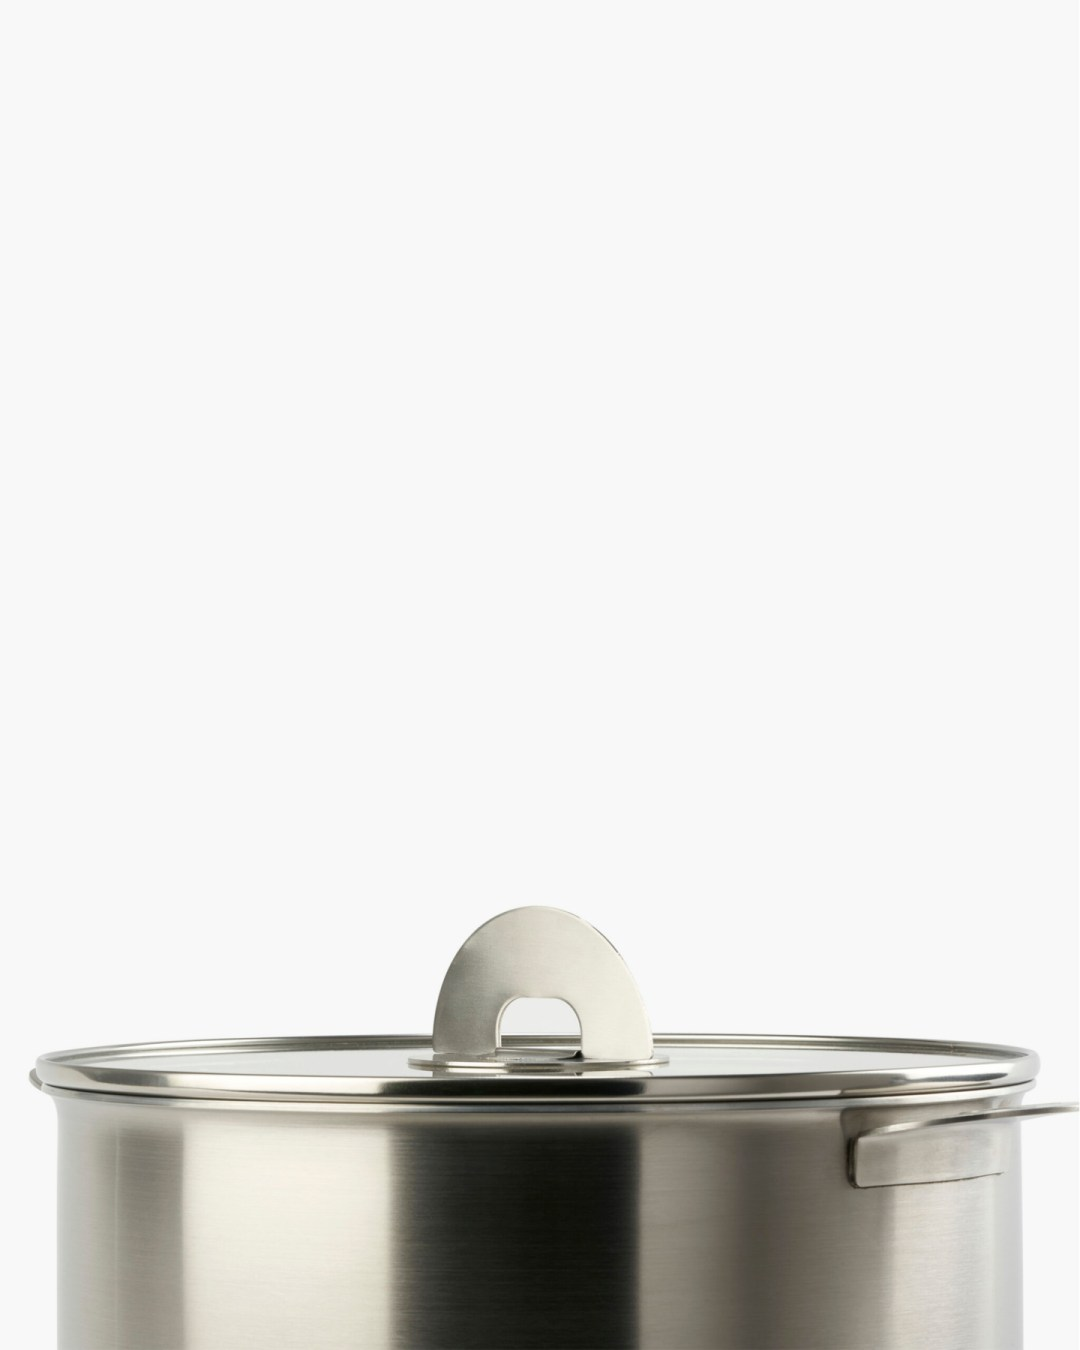 ENSESMBL Stackware stainless steel cookware with lid